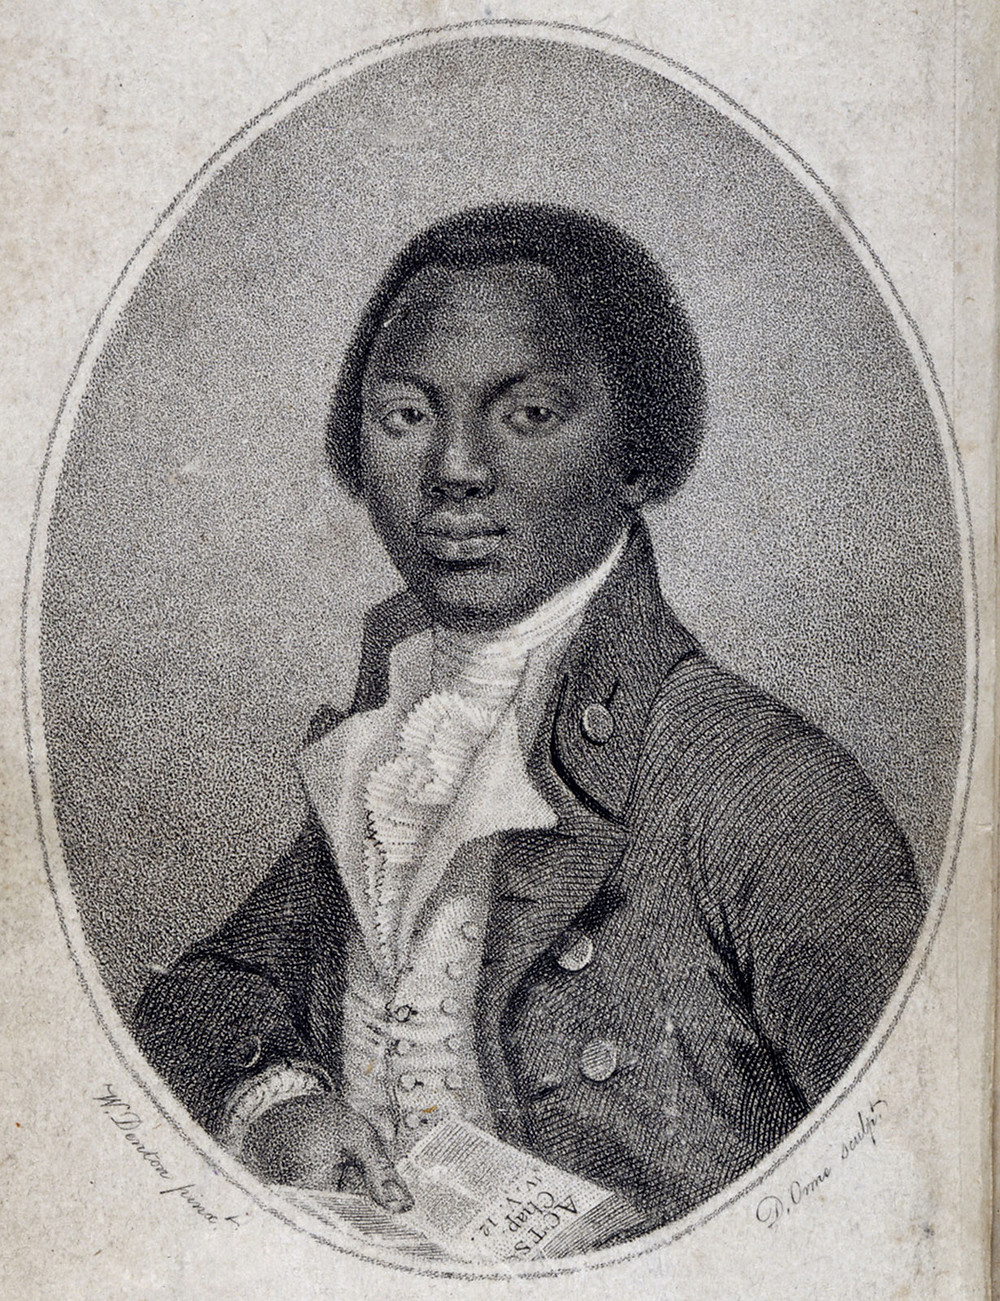 This is an illustration of Olaudah Equiano, a Black man. He's wearing a white dress shirt and a dark jacket that reflect the style of the time.